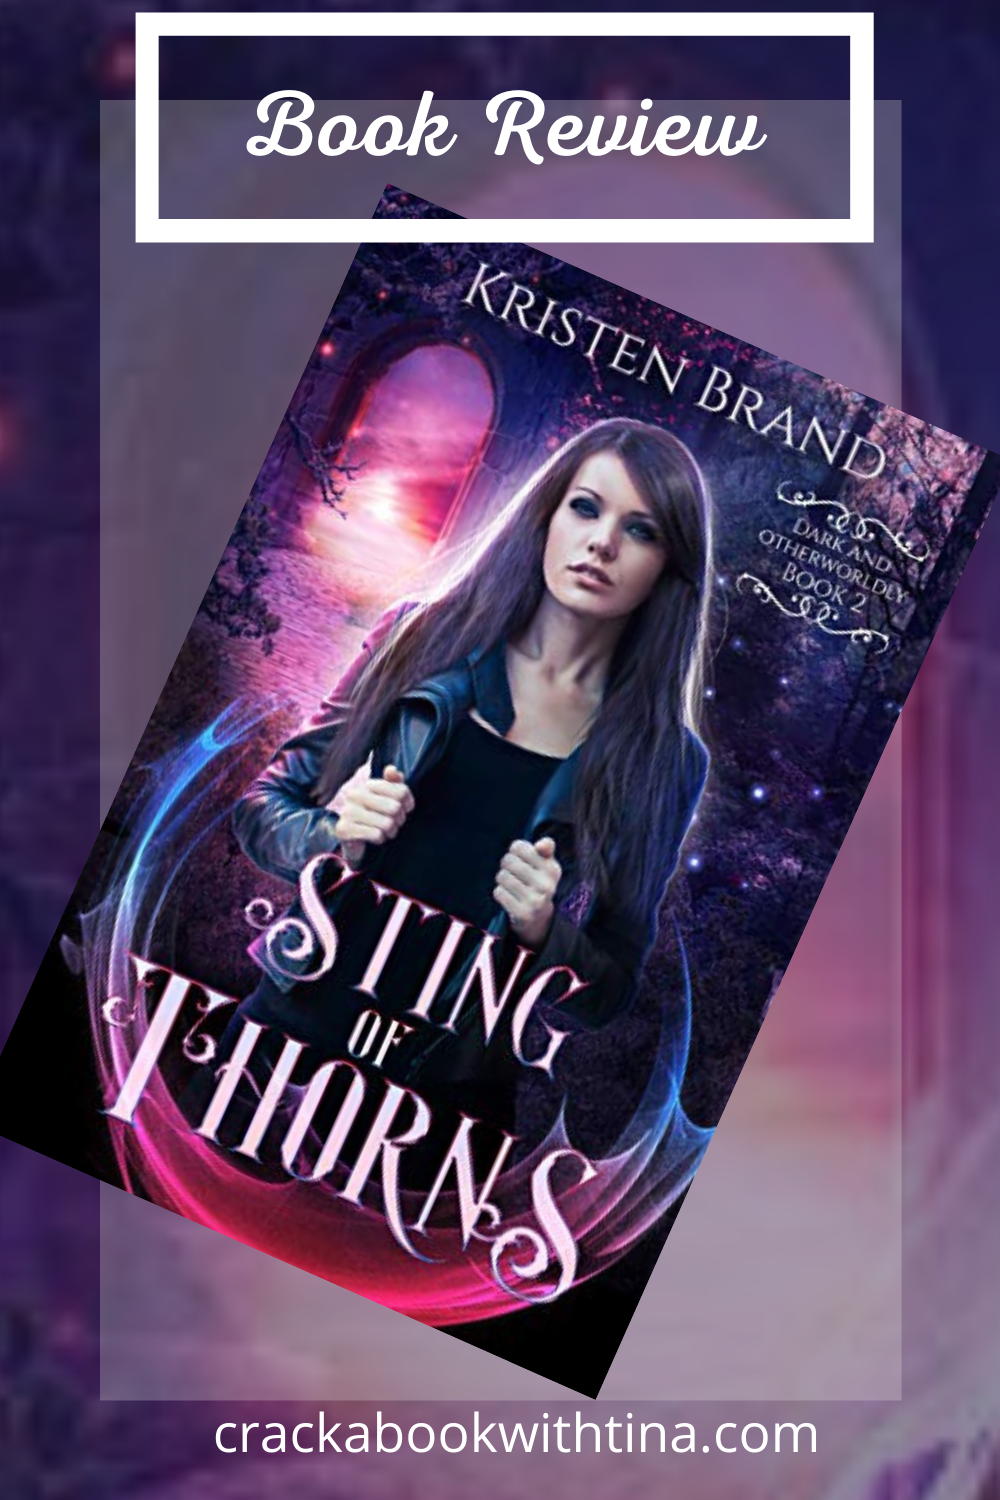 Sting of Thorns by Kristen Brand ARC Review